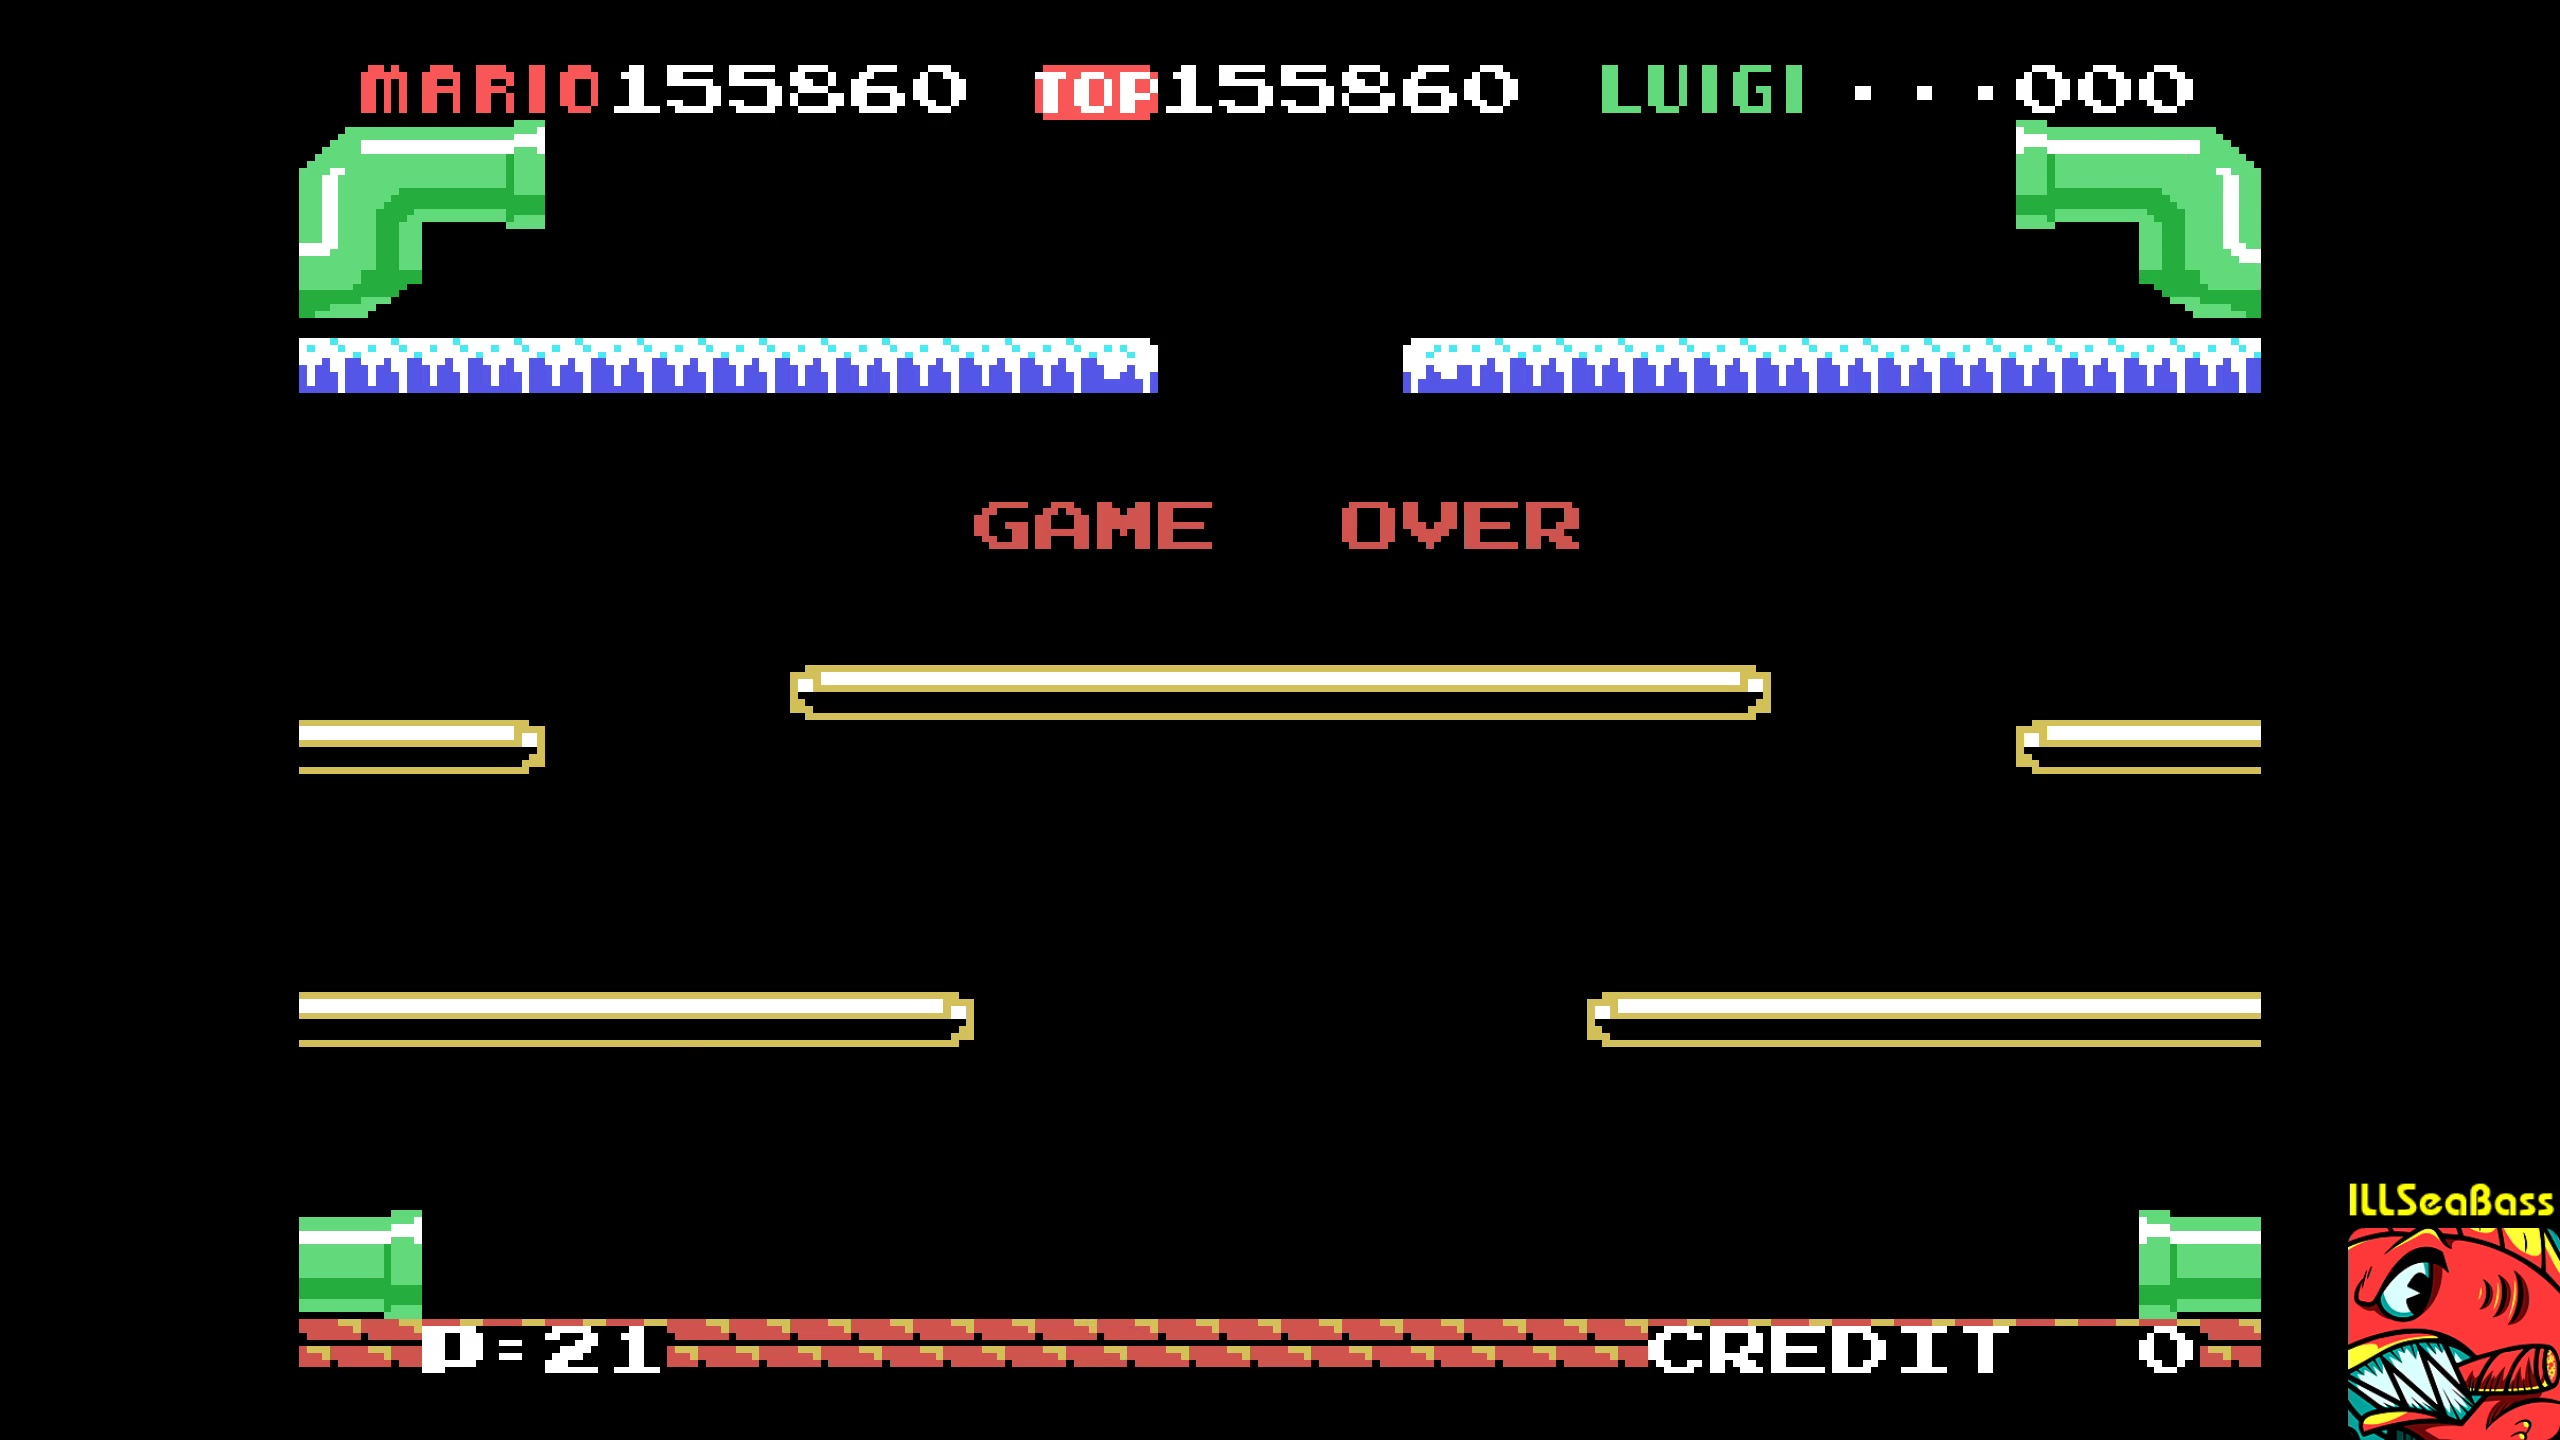 ILLSeaBass: Mario Bros (Colecovision Emulated) 155,860 points on 2018-02-03 01:07:24